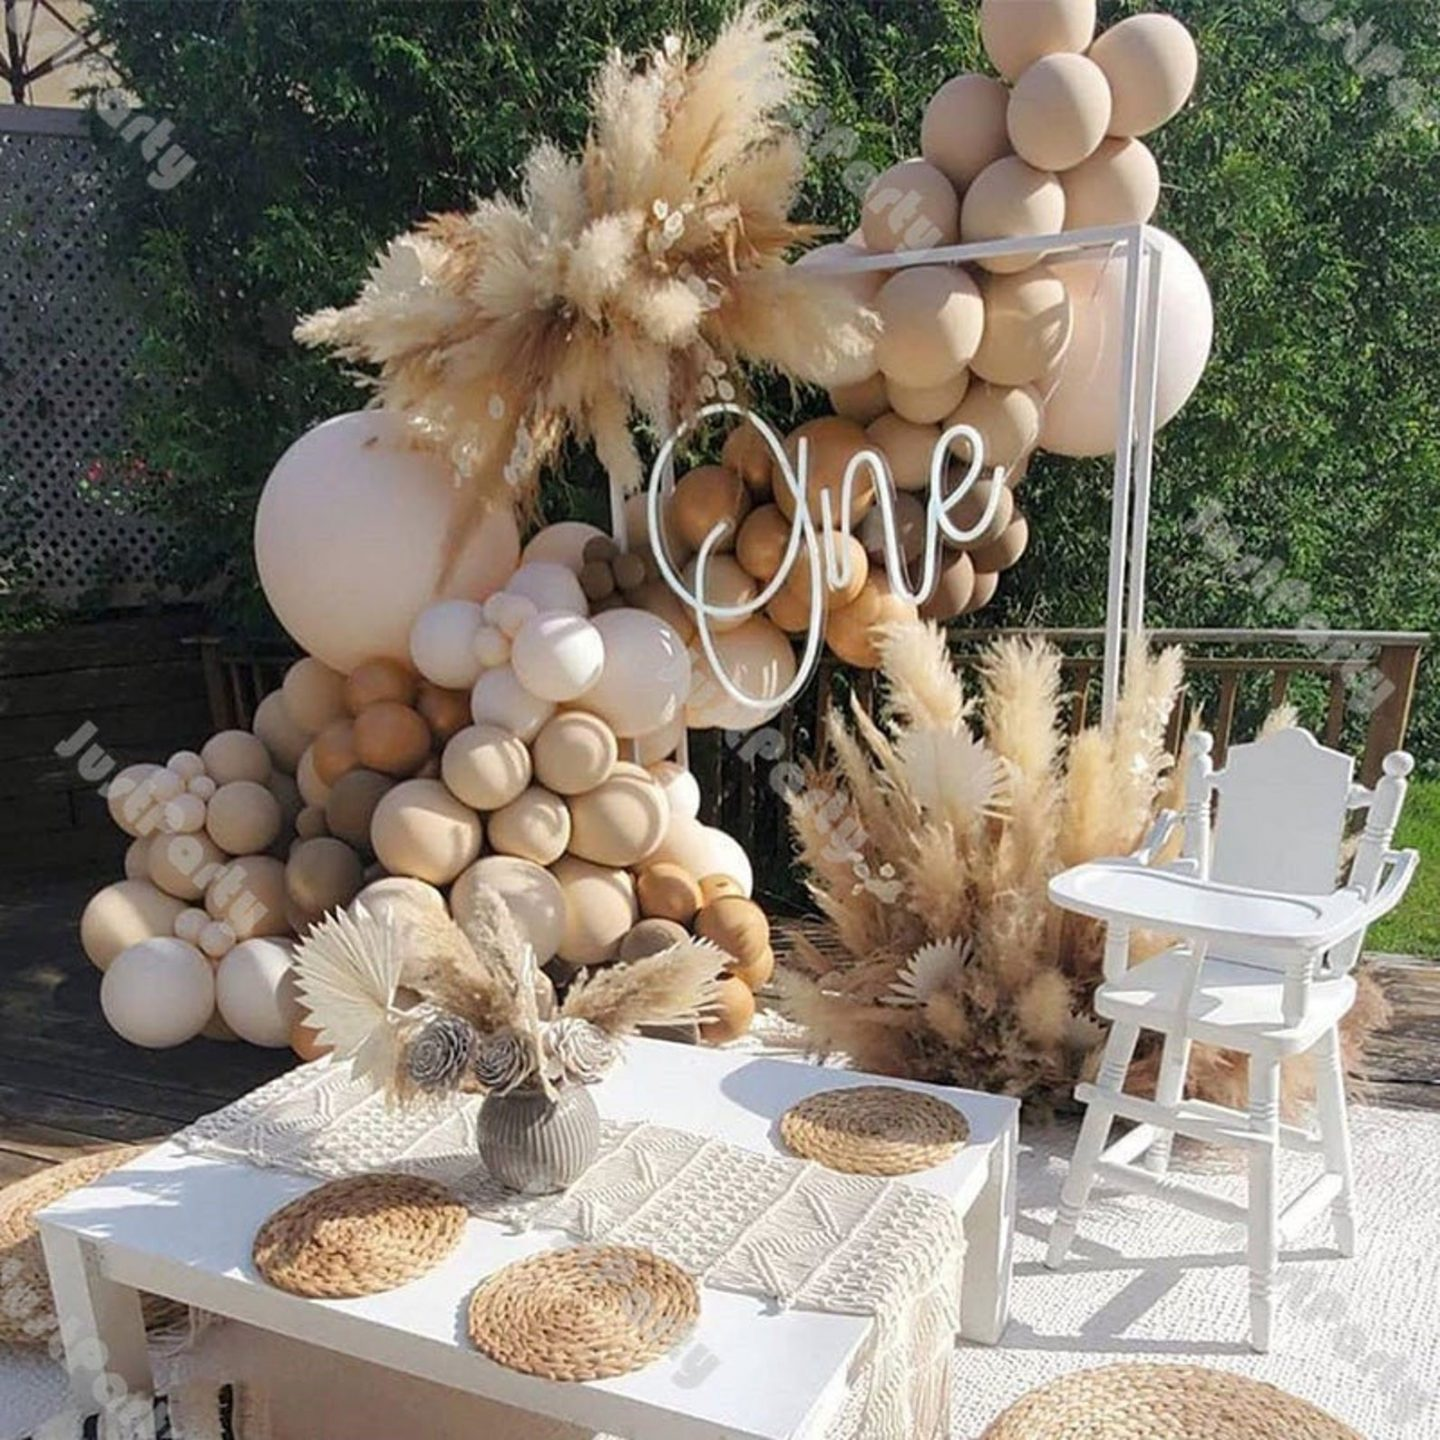 Matte cream and brown birthday balloons and party decorations